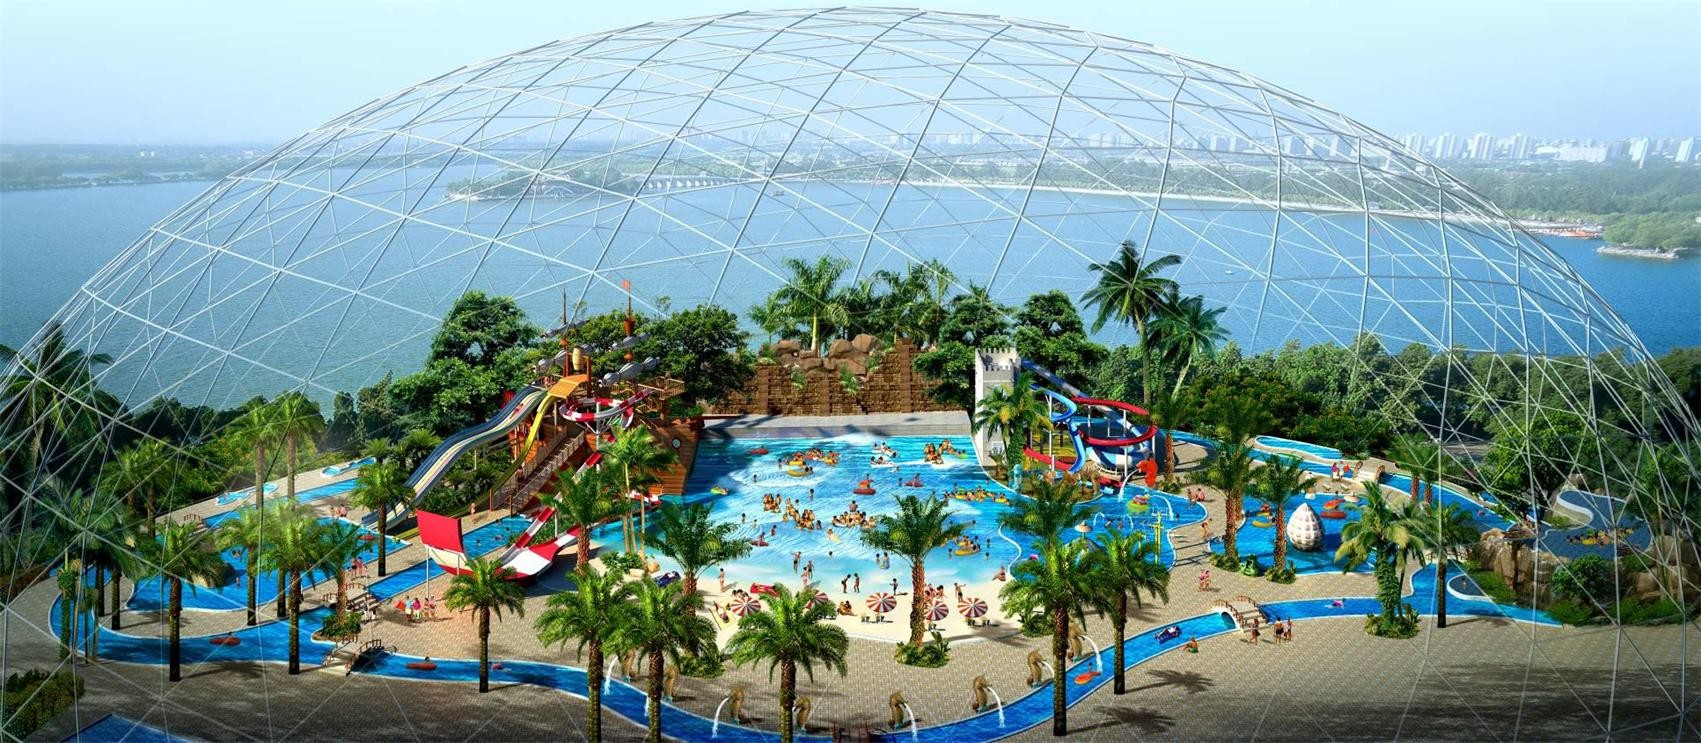 Indoor Professional Water Park Conceptual Customized for House